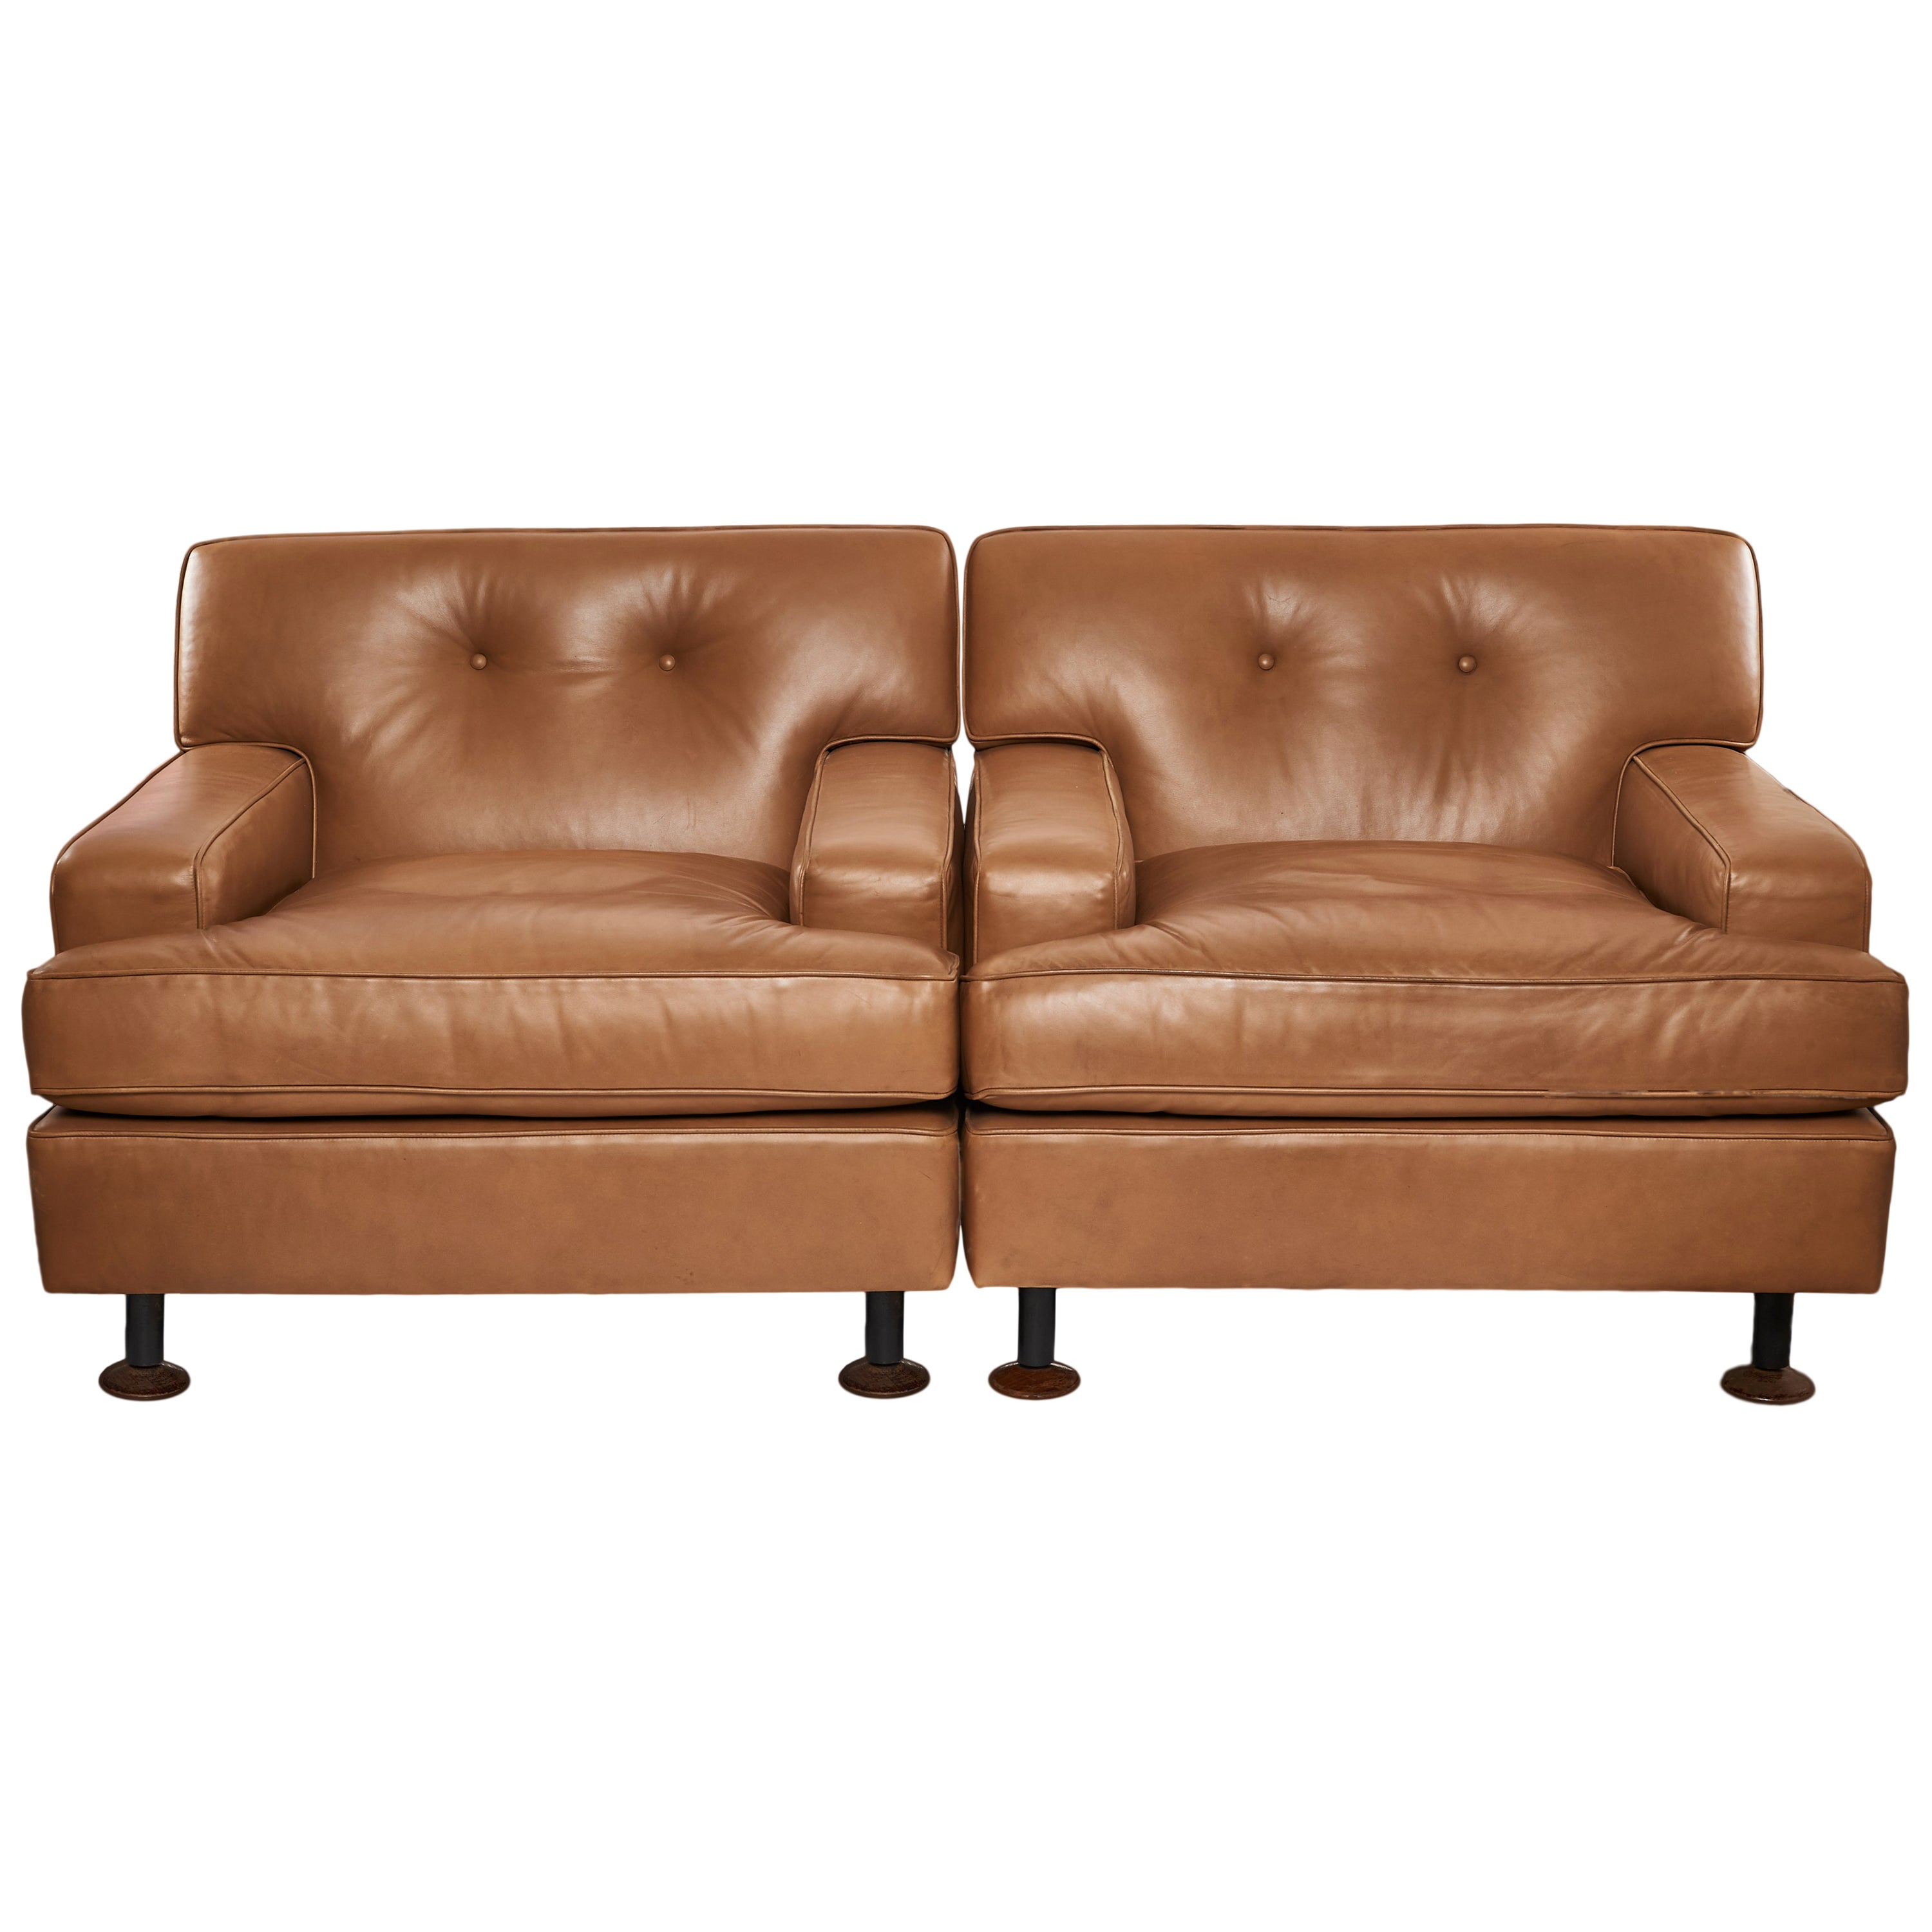 """Pair of Marco Zanuso """"Square"""" Brown Leather Lounge Chairs, Italy, 1962"""